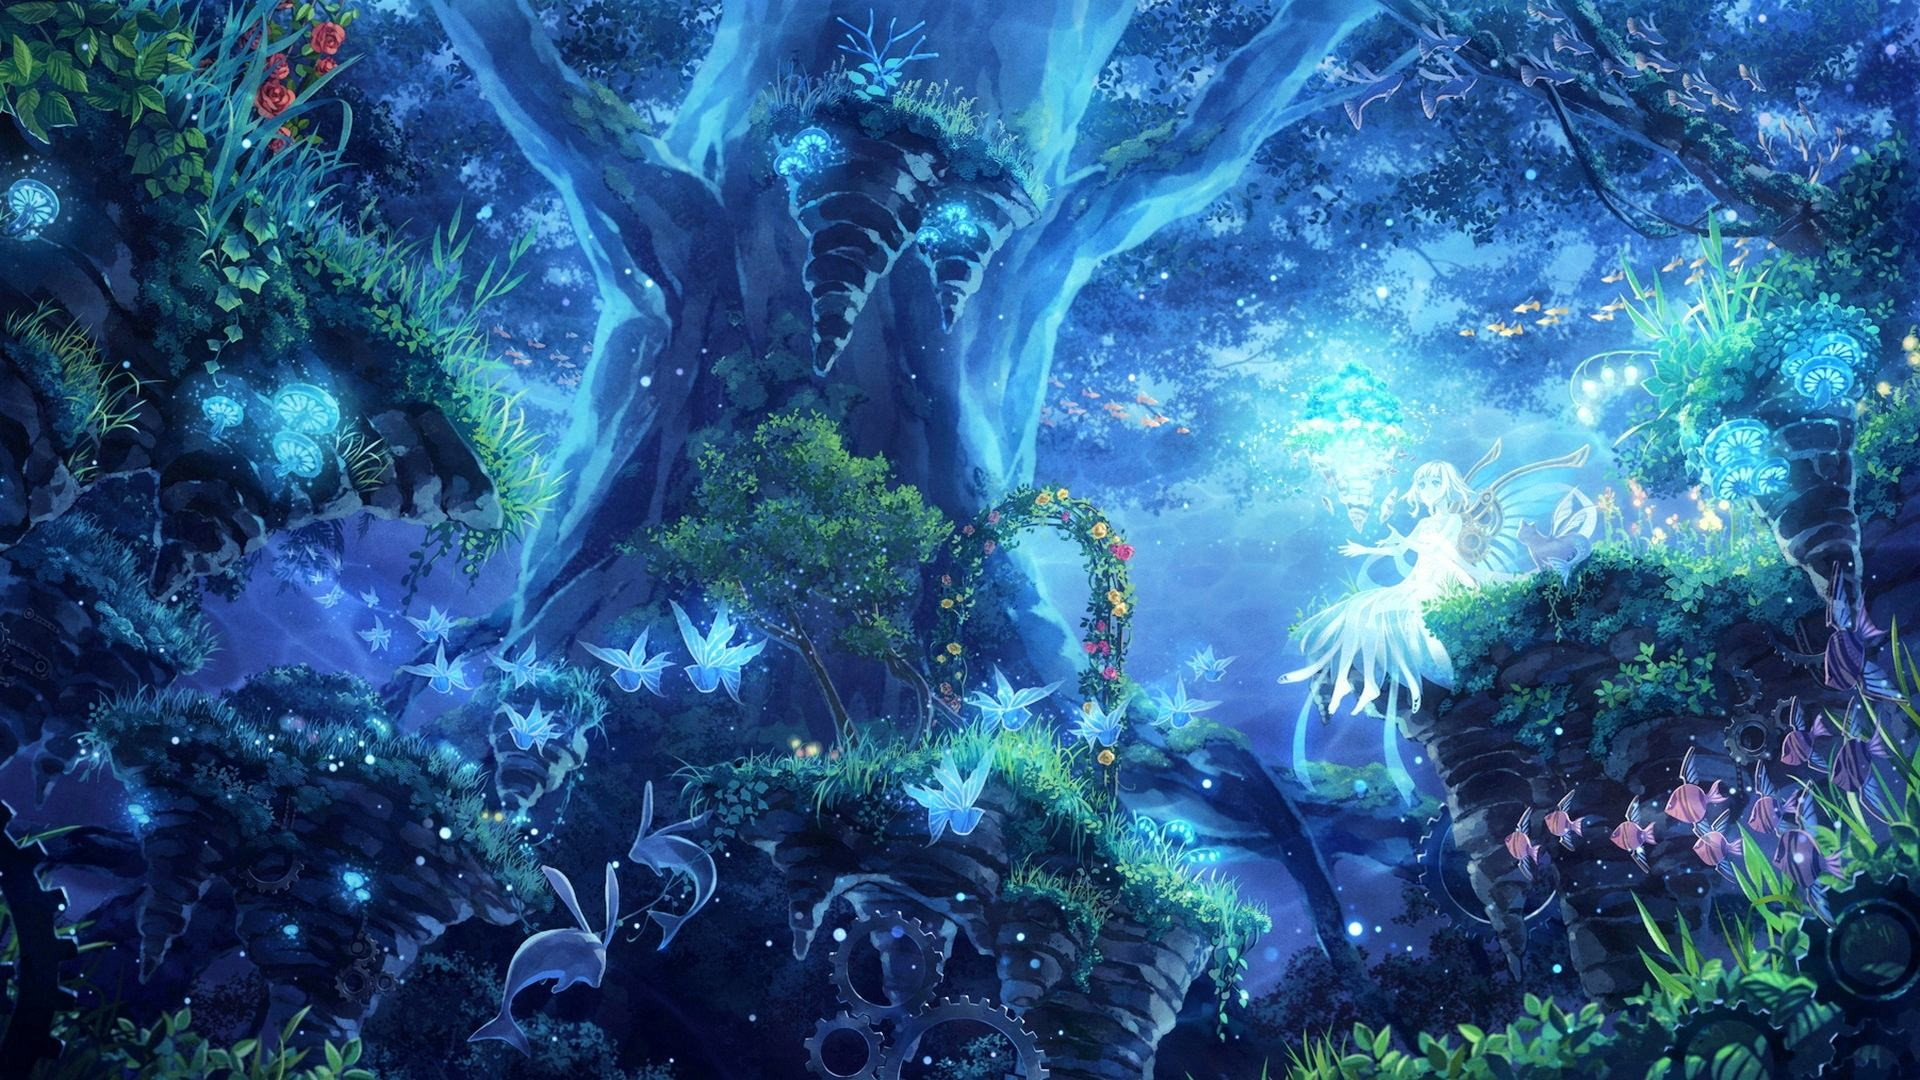 Trippy forest wallpaper 56 images for Where to get wallpaper